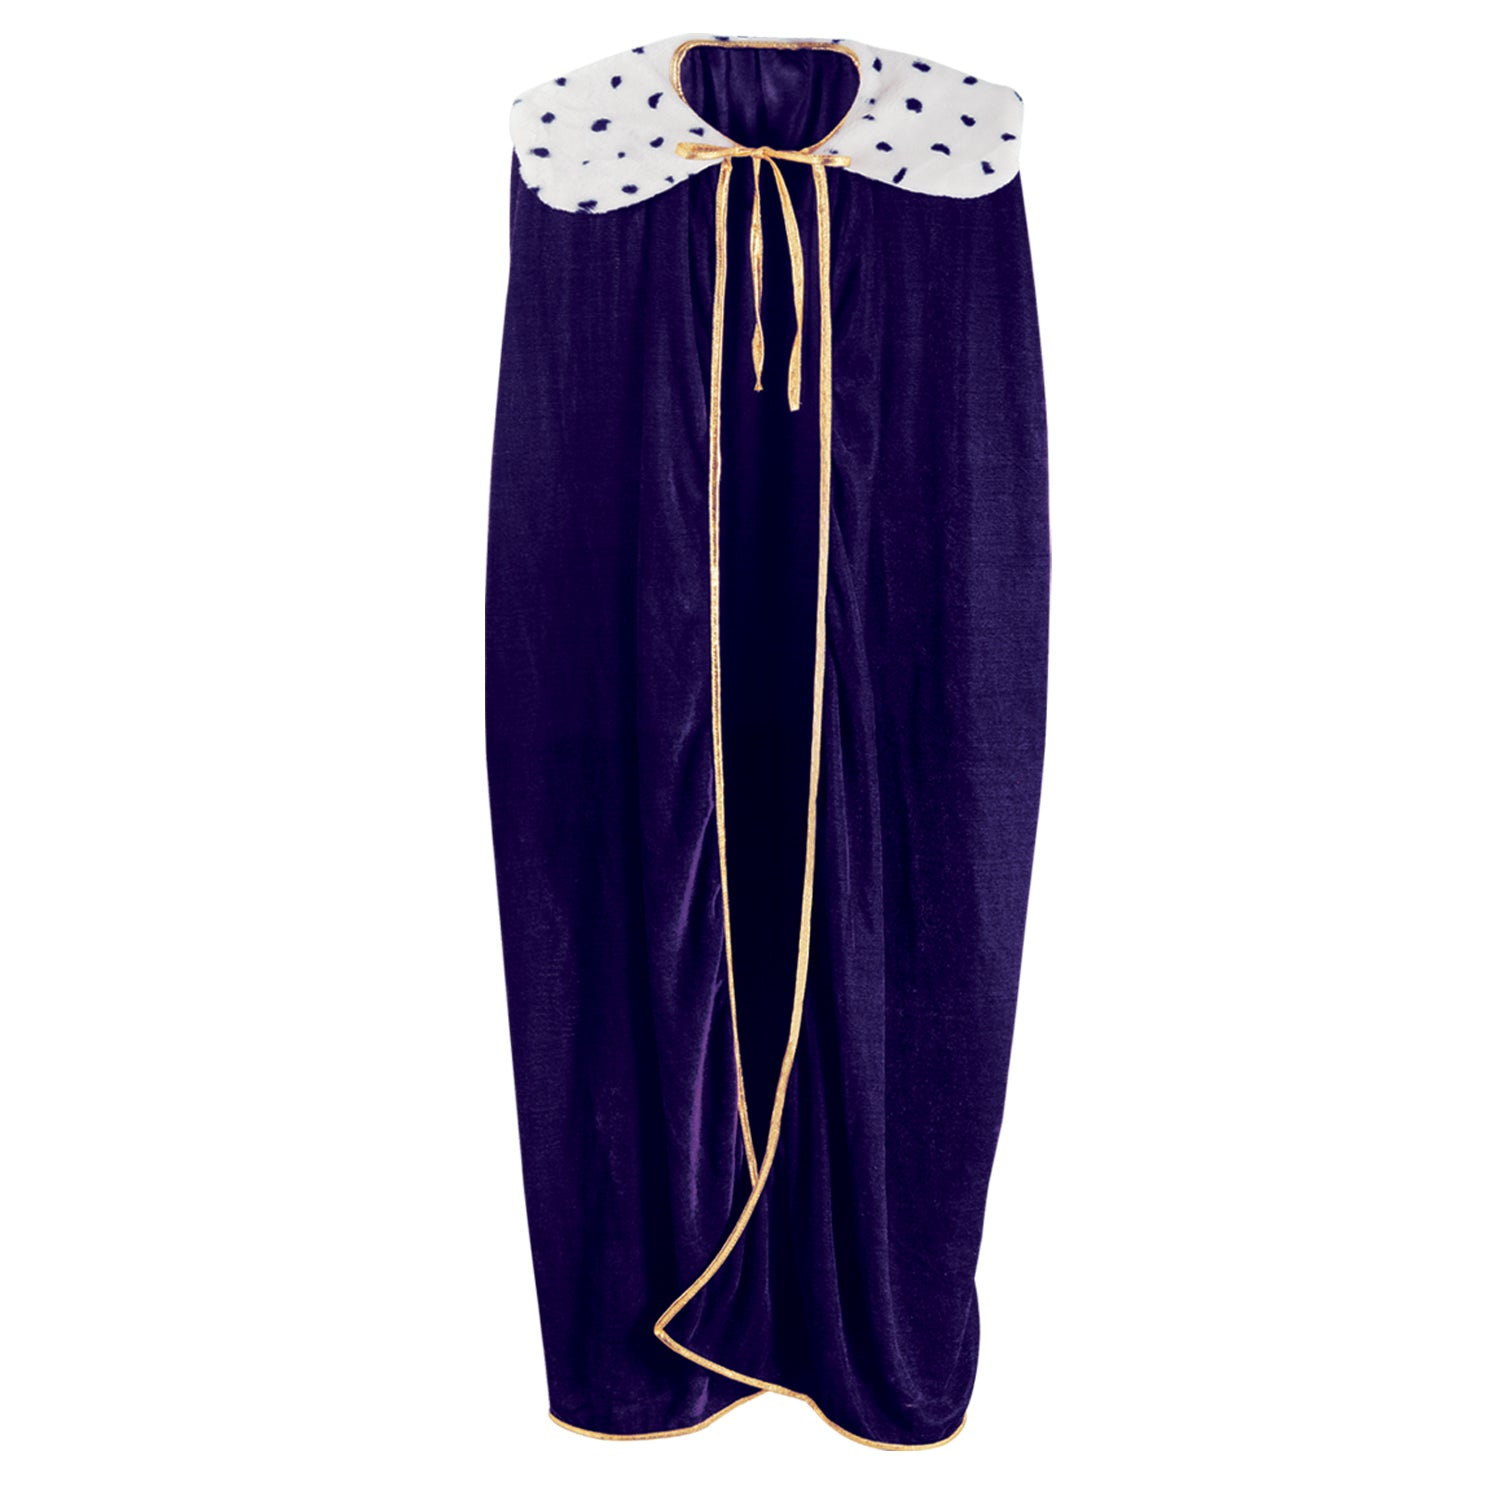 Adult King/Queen Robe, purple by Beistle - Mardi Gras Theme Decorations